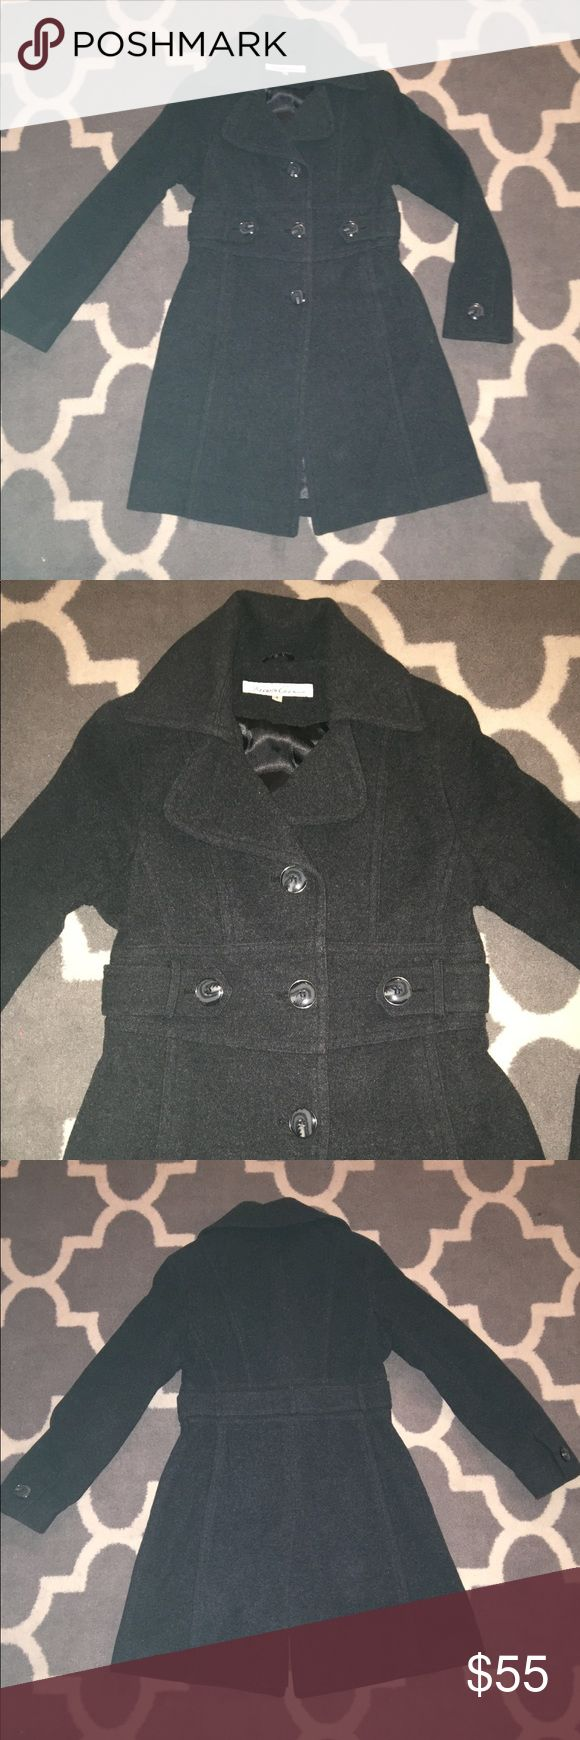 Women's peacoat Women's Kenneth Cole, peacoat. Size 8. Dark grey. Excellent condition ! Kenneth Cole Jackets & Coats Pea Coats